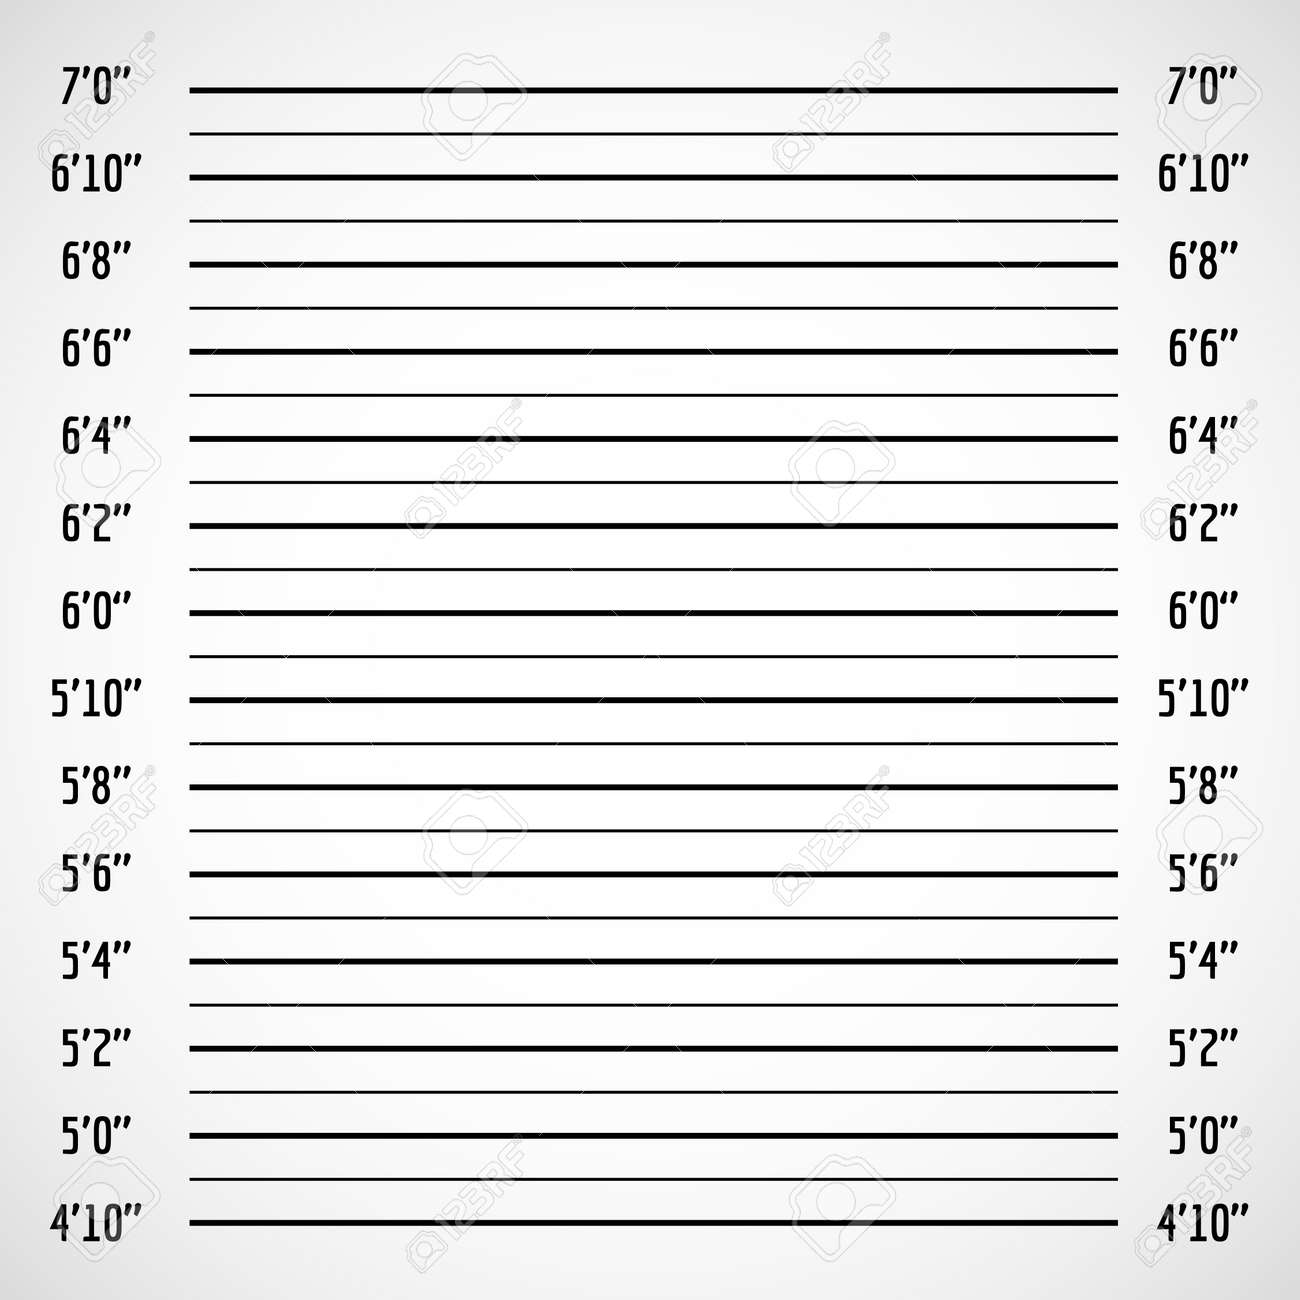 Blank criminal police lineup or mug shot vector background. Police wall for height line up photography illustration - 165950013